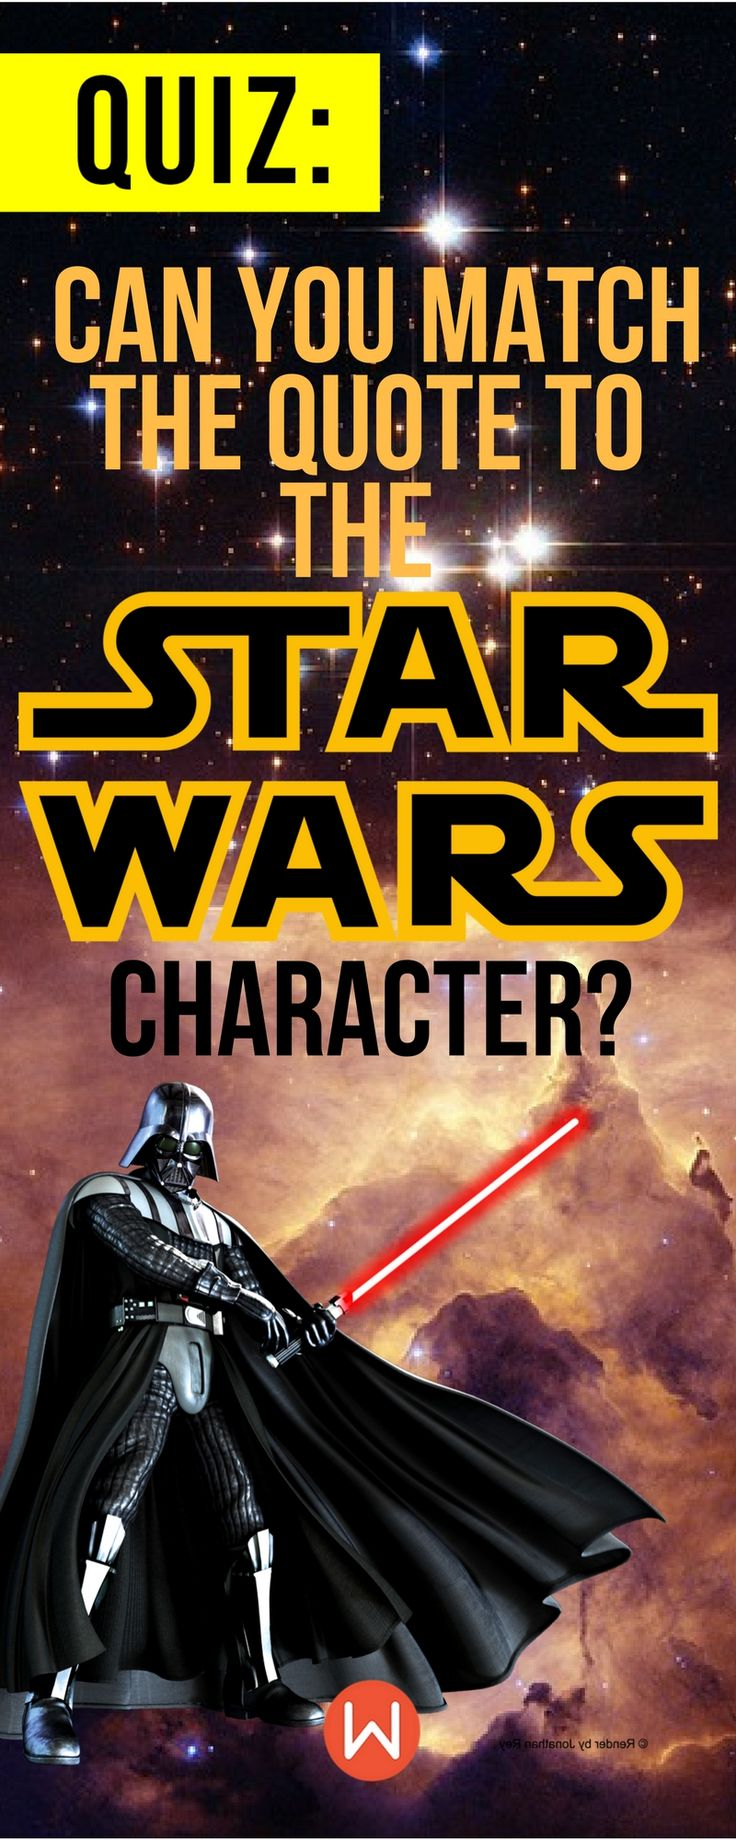 Quiz: Can you match the Star Wars quote to the character? Star Wars Quiz, Star Wars Trivia, Star Wars Test, Buzzfeed Quizzes, Playbuzz Quiz